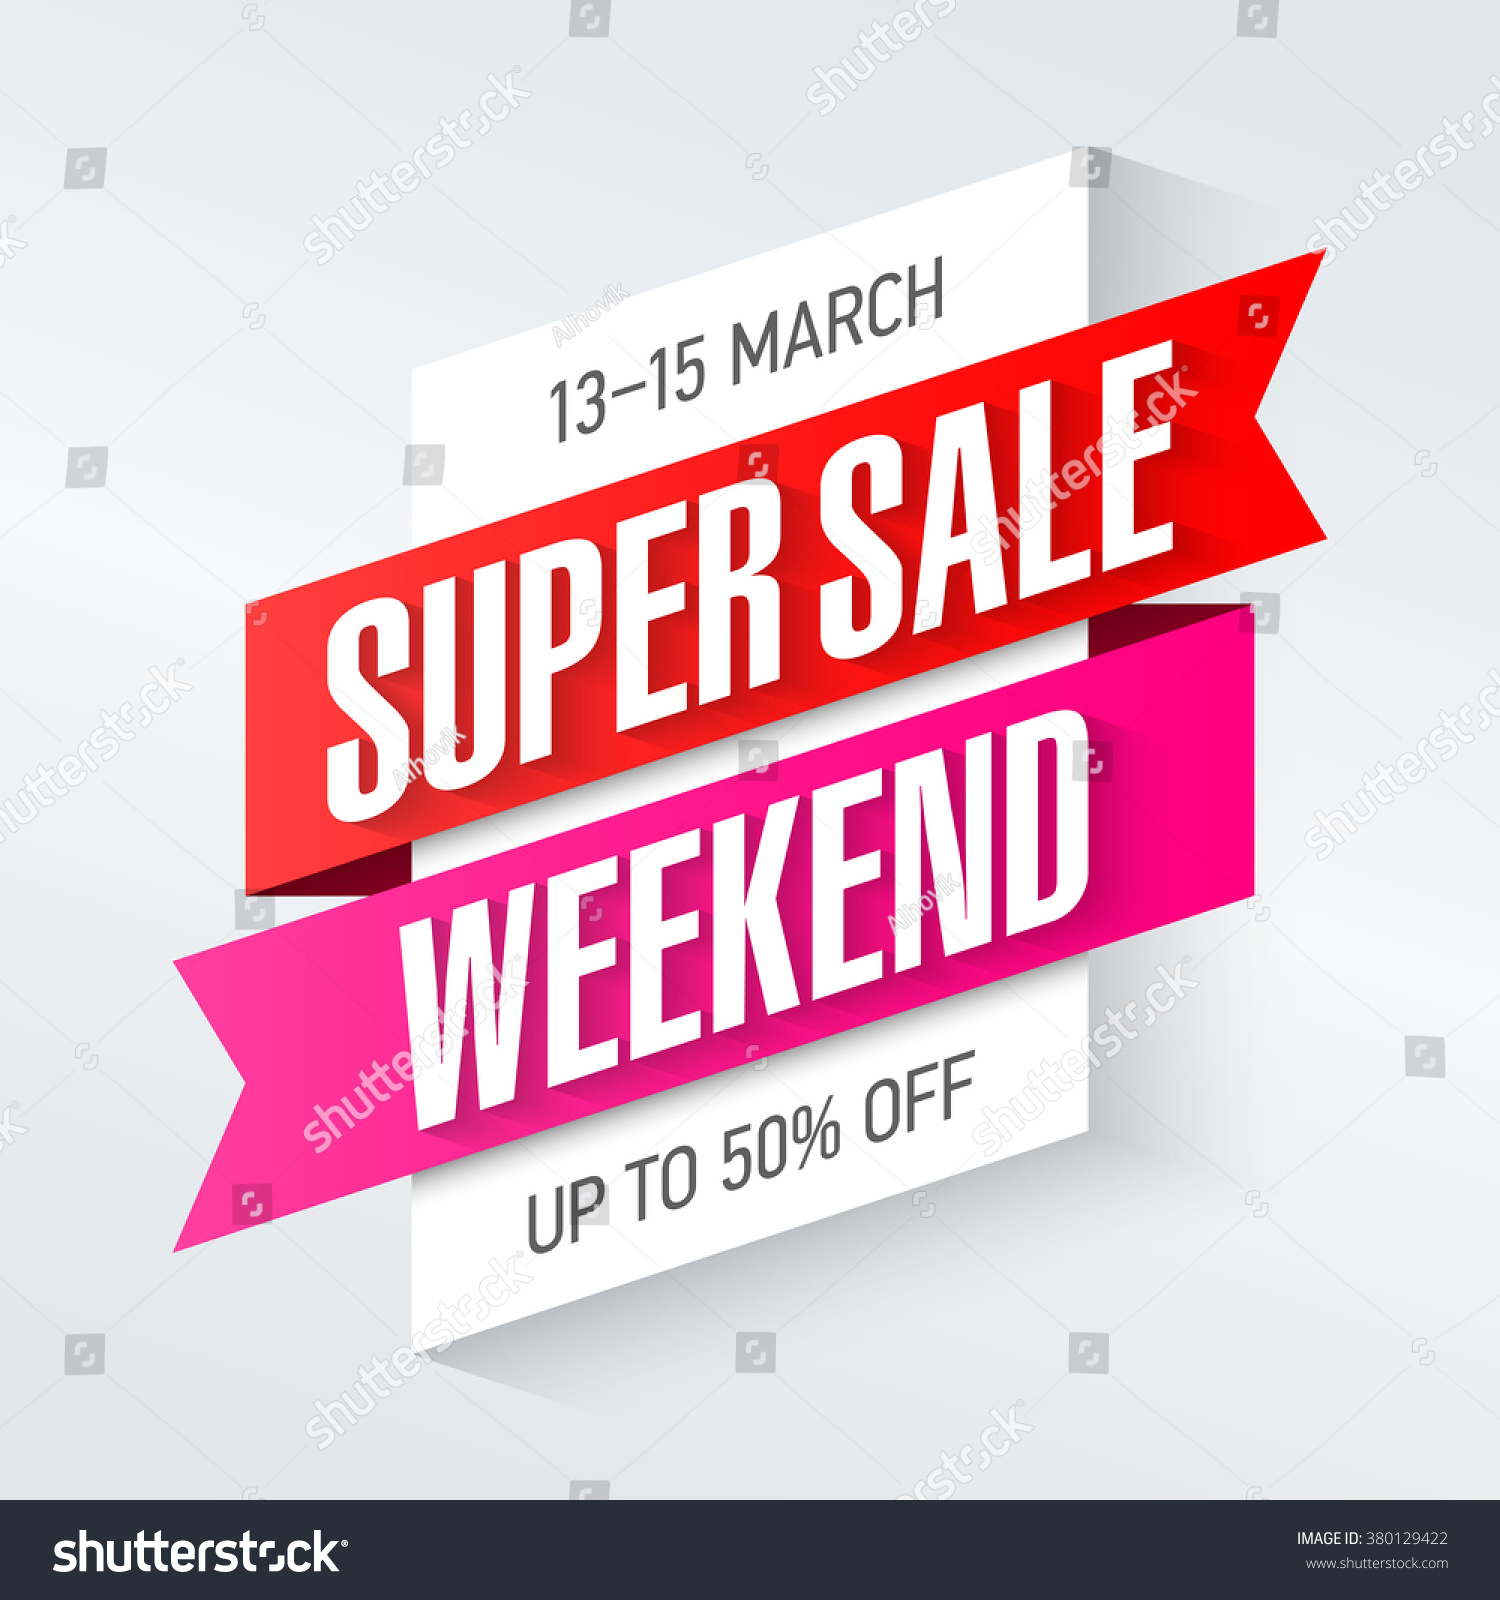 super sale weekend special offer poster stock vector